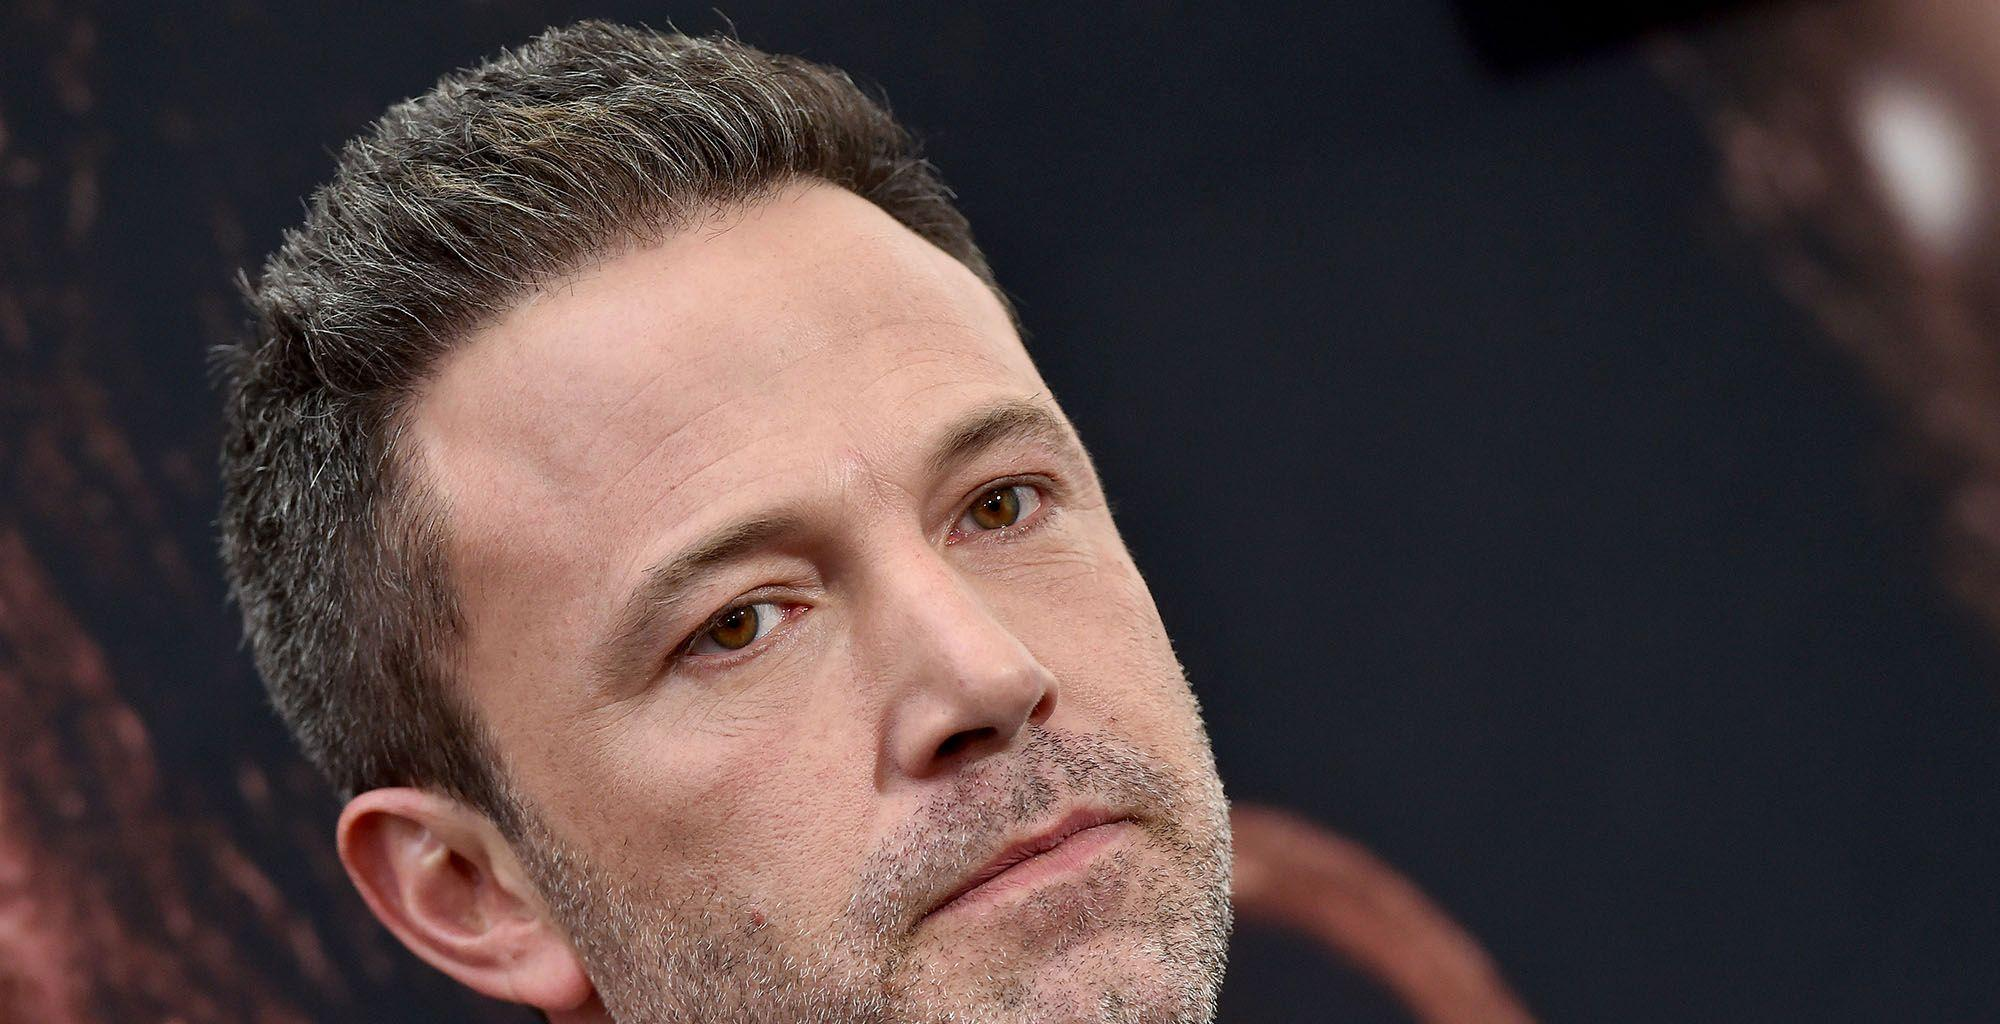 Ben Affleck Almost Drops His Dunkin' Donuts Coffee And Donuts Box And The Internet Thinks It's The Perfect Meme For 2020 - Pics!